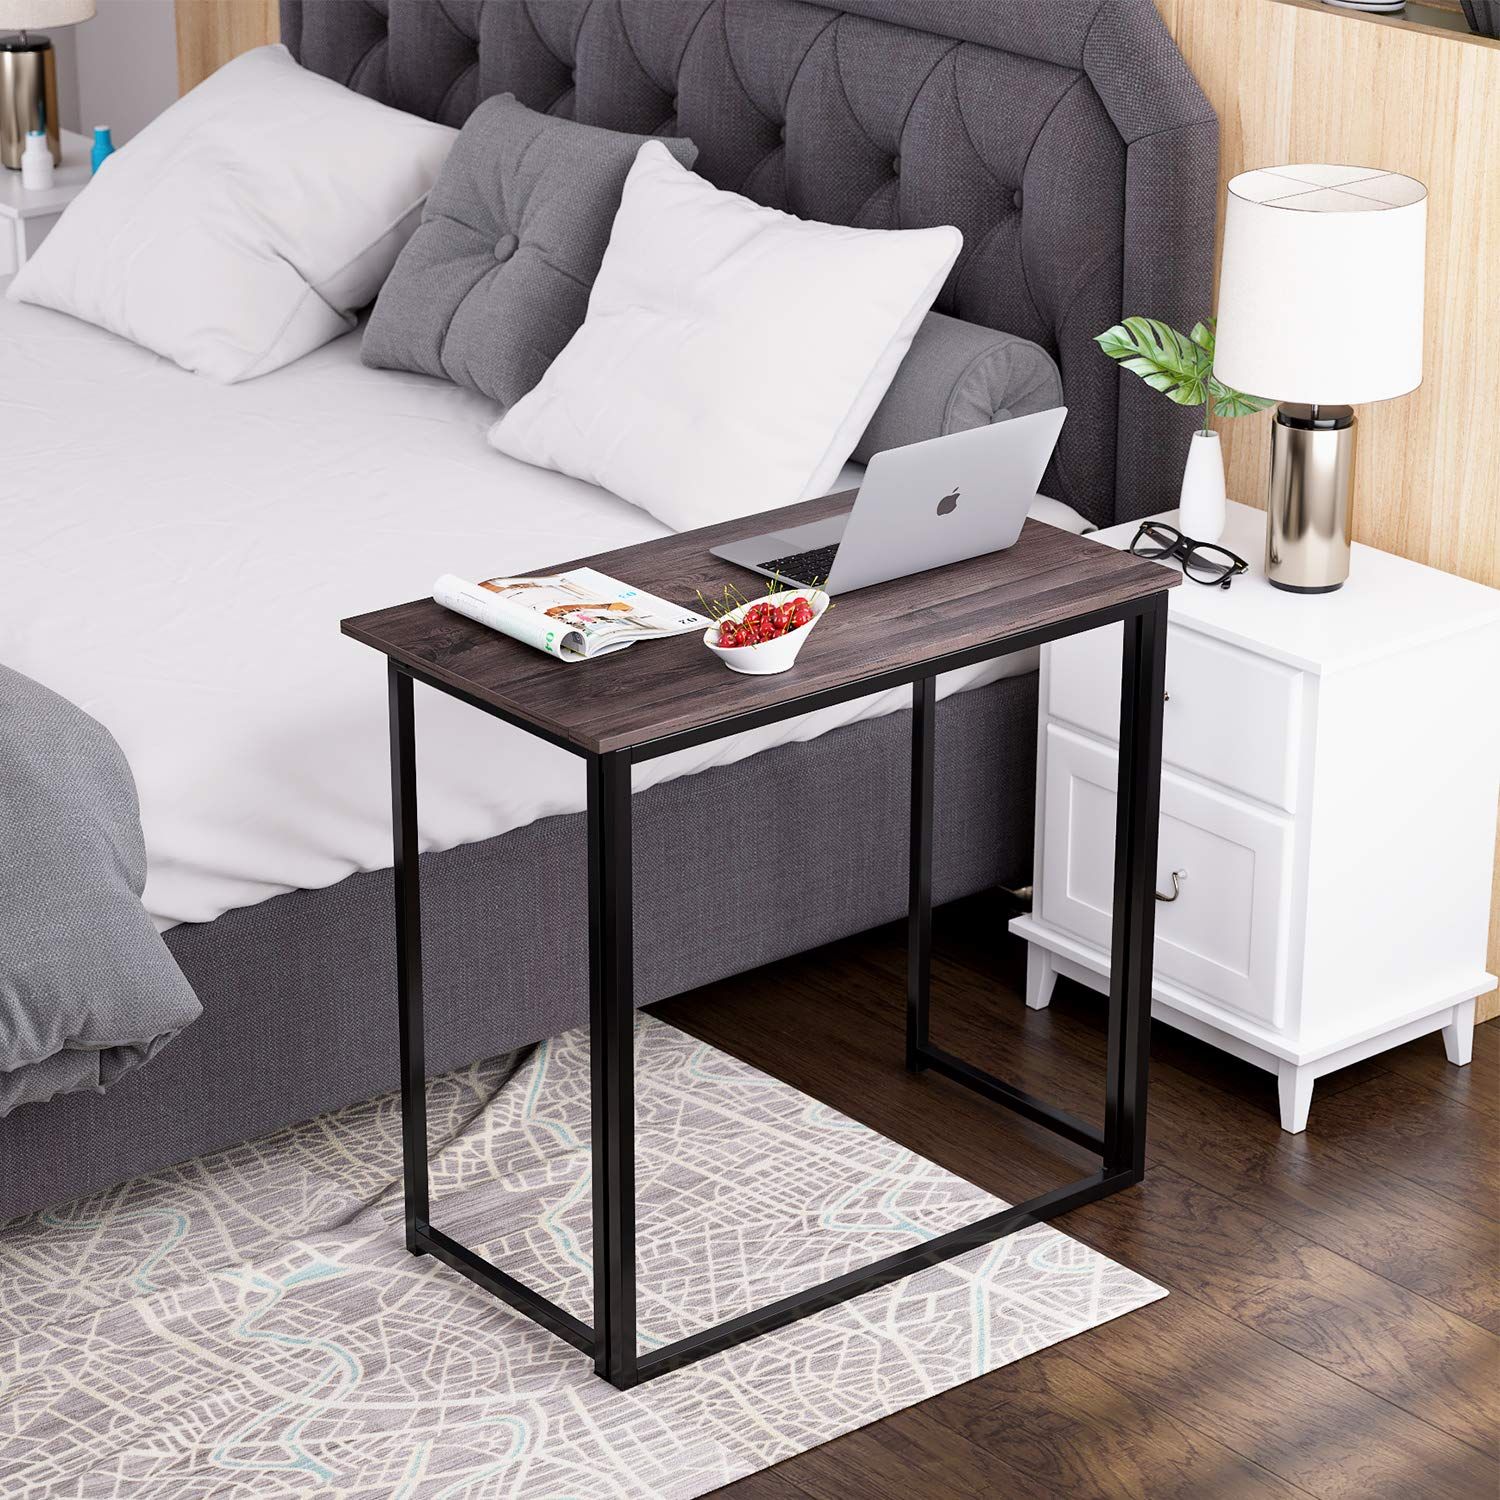 HOMFA Folding Laptop Table, Writing Computer Notebook Desk, Modern Simple Industrial Style TV Tray Bed/Sofa Side Study Table, Space Saving Furniture for Home Office